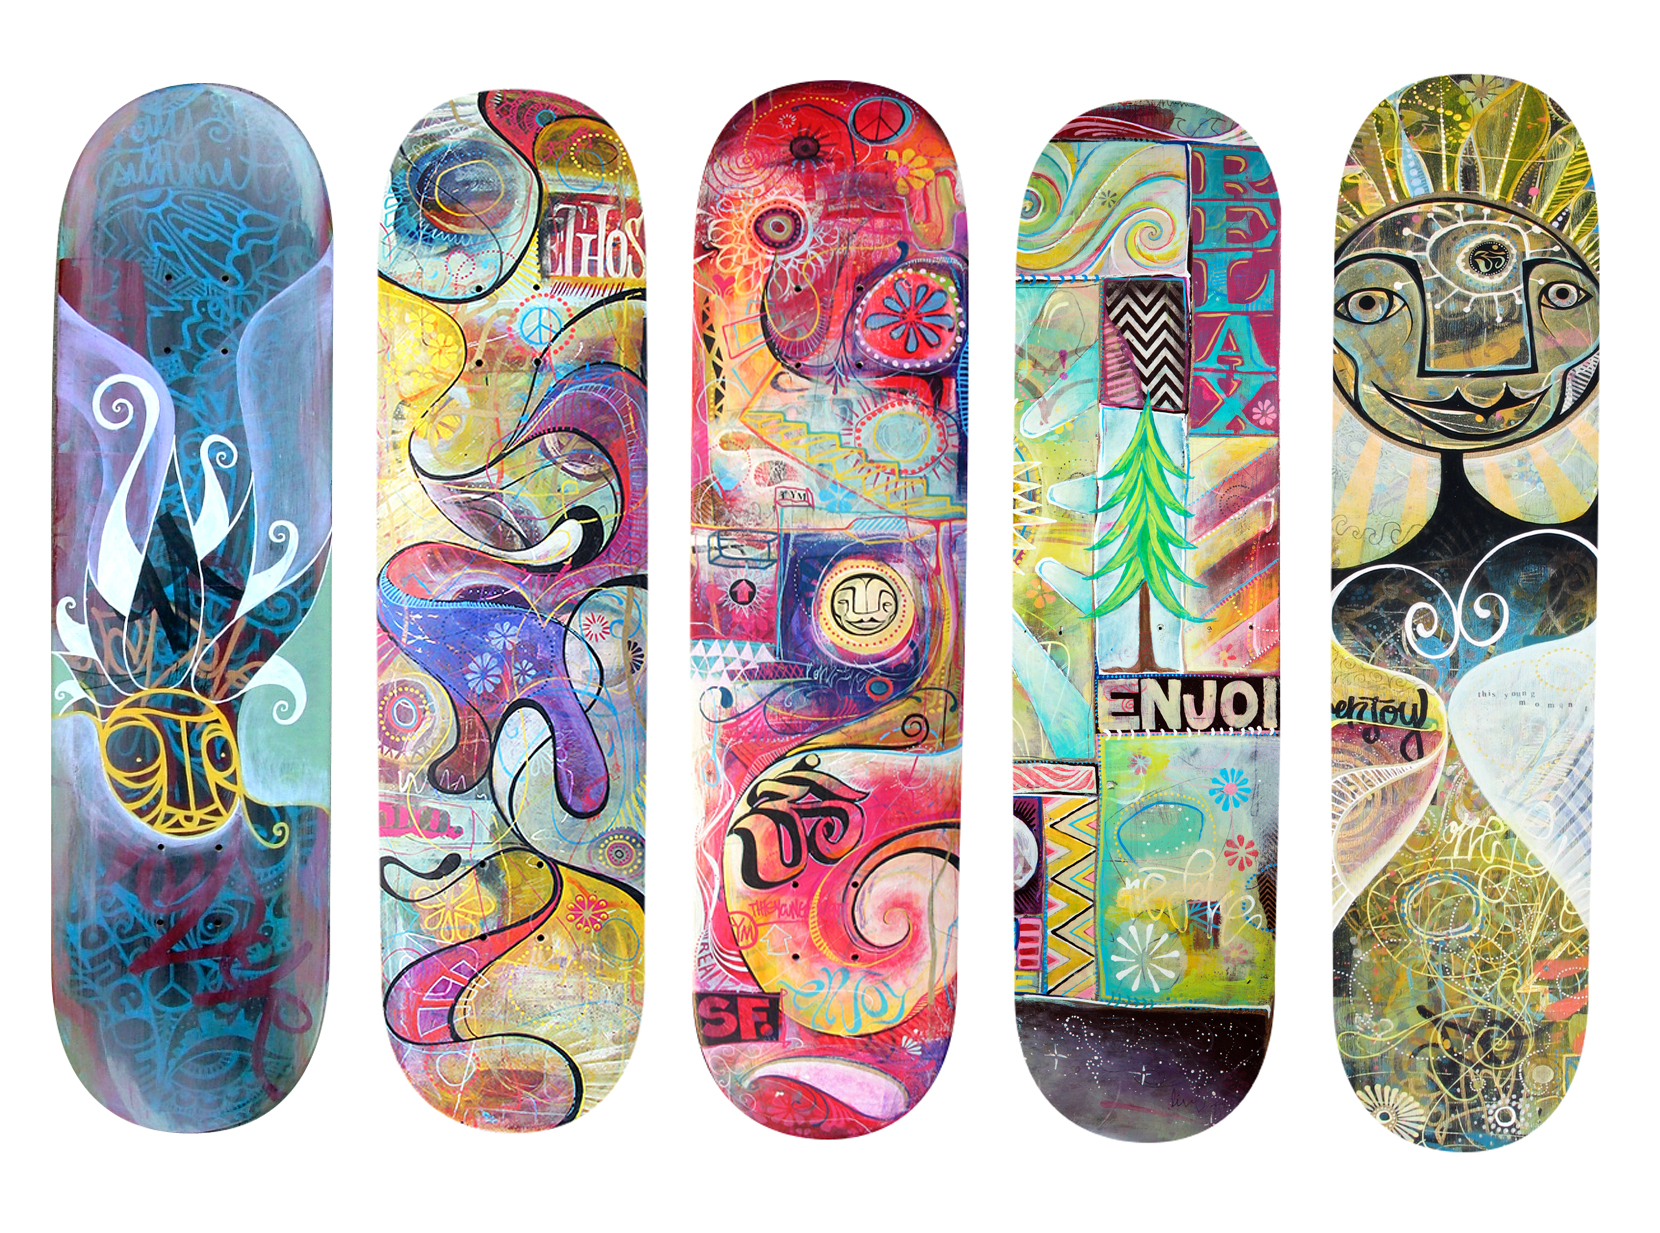 Skateboards painted over the years